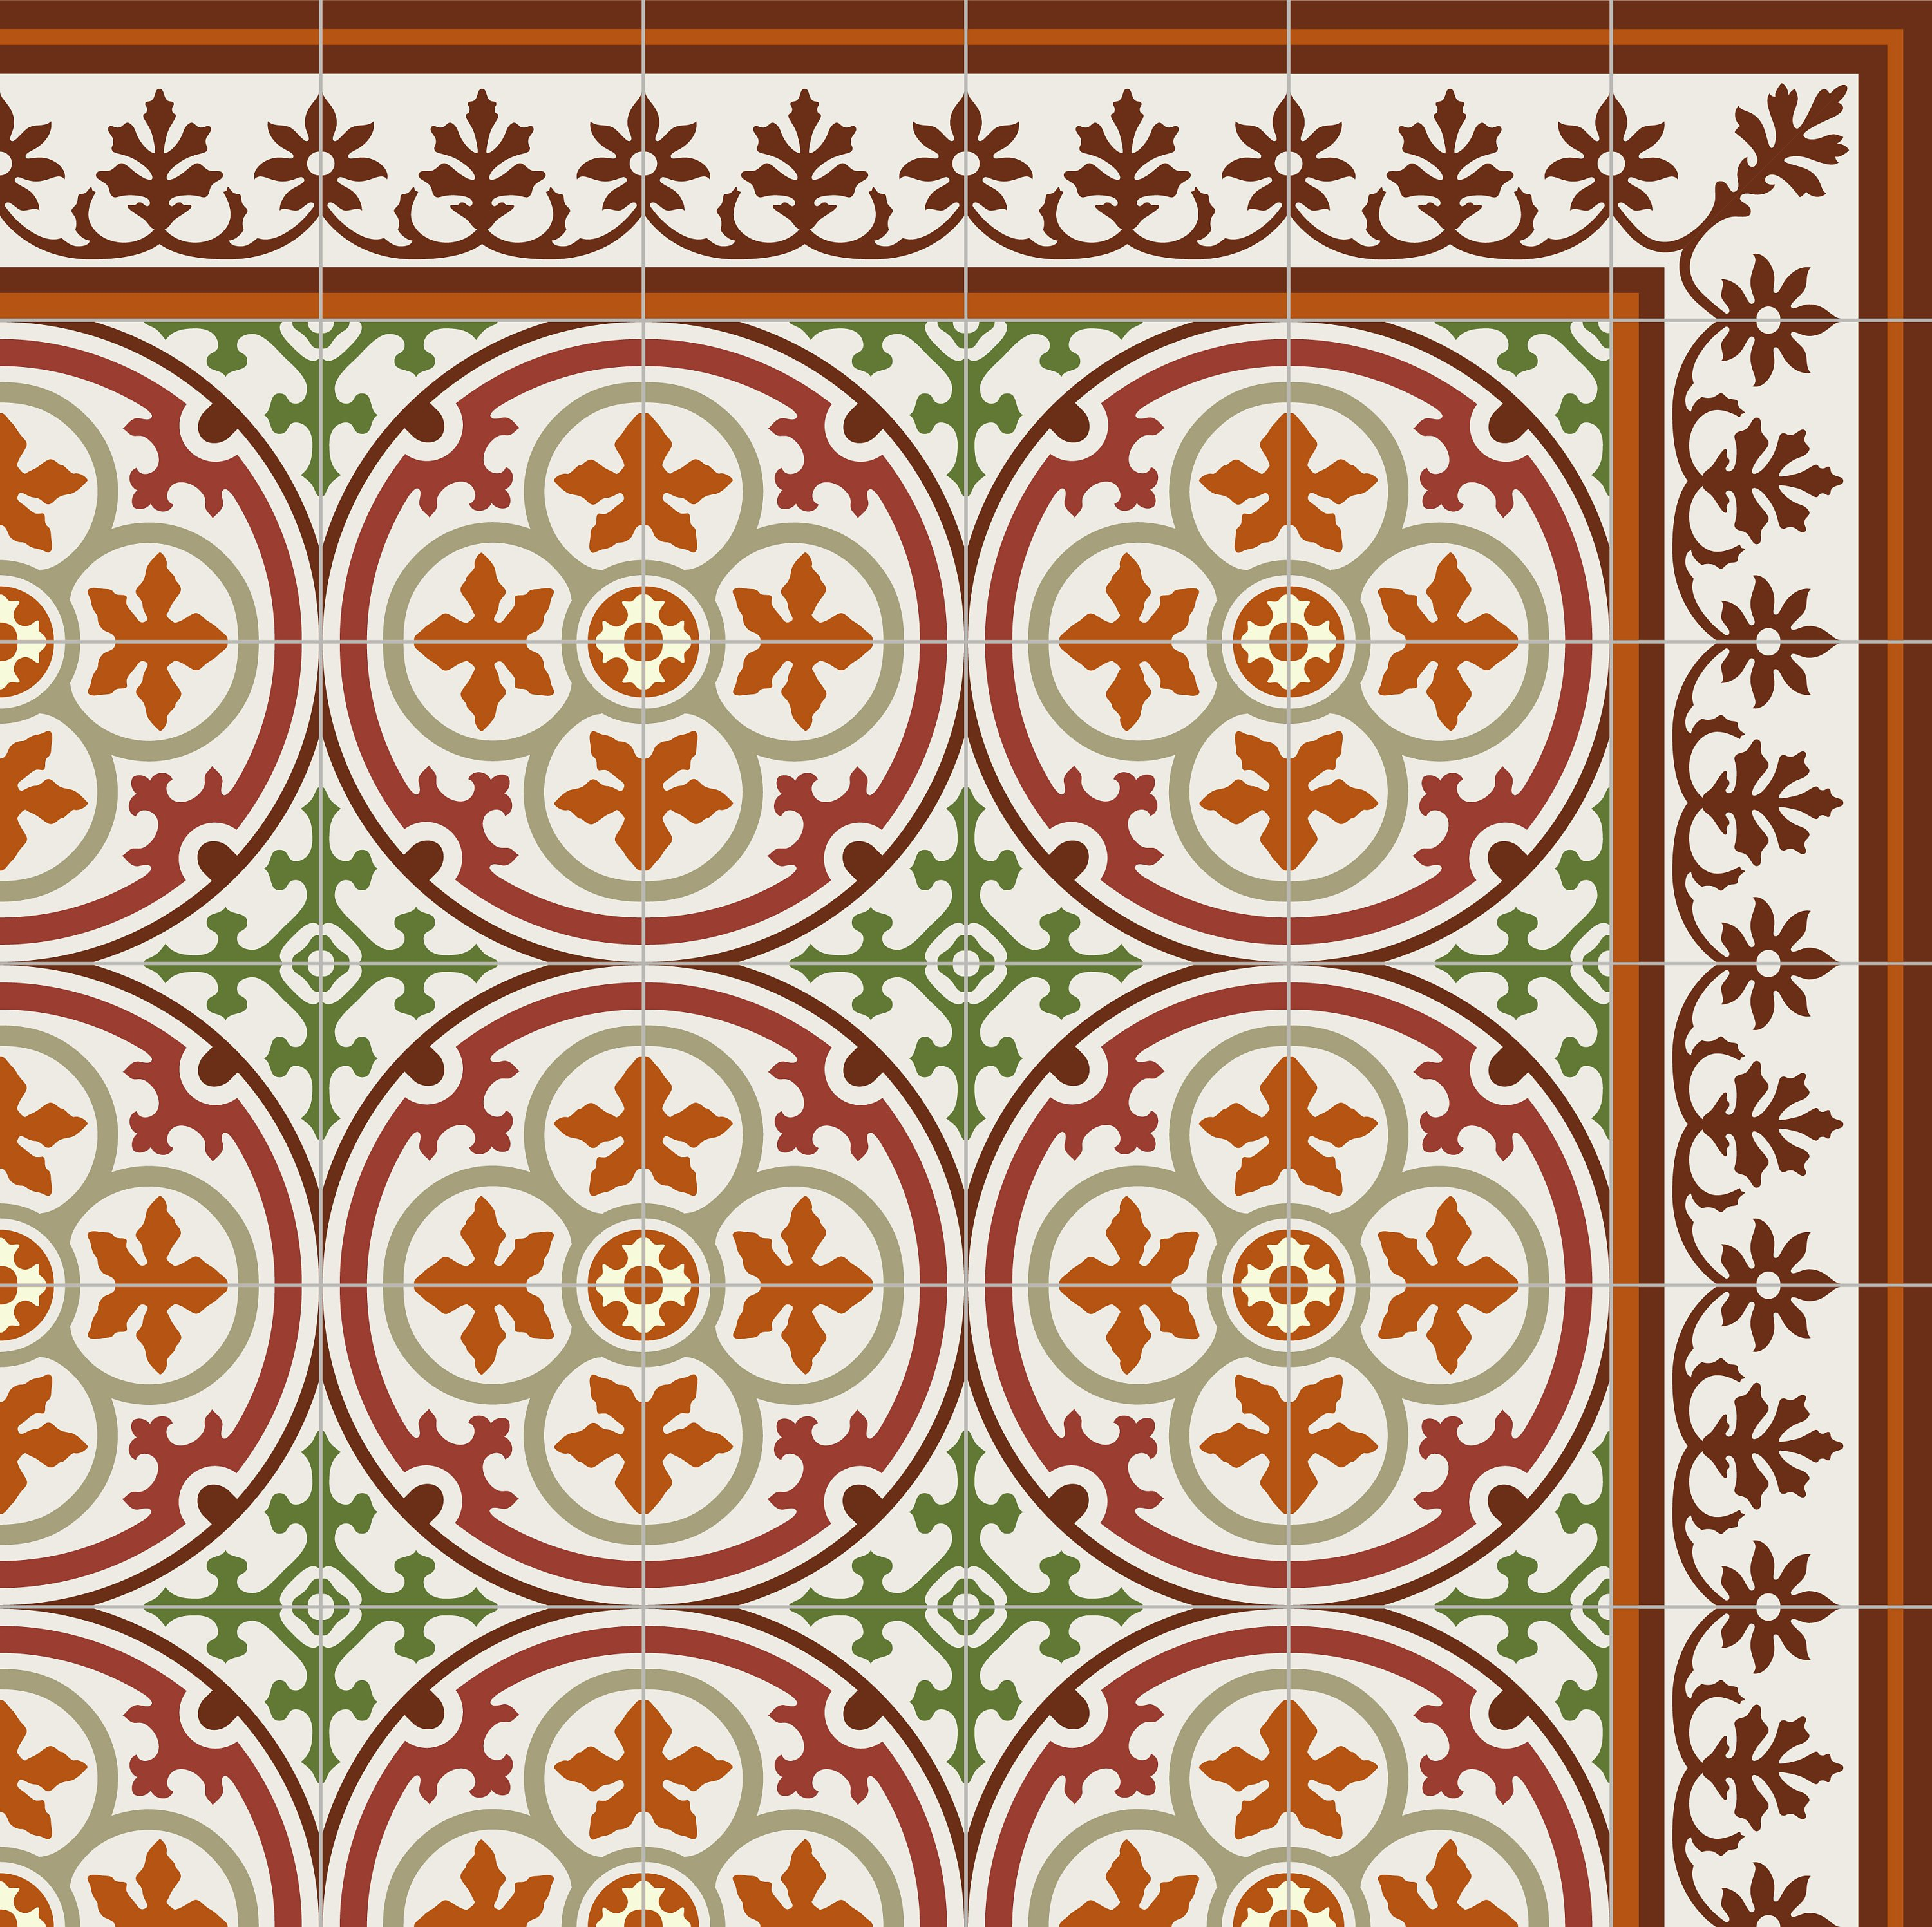 Beliebt PVC vinyl mat Tiles Pattern Decorative linoleum rug , Bordeaux Red JY48